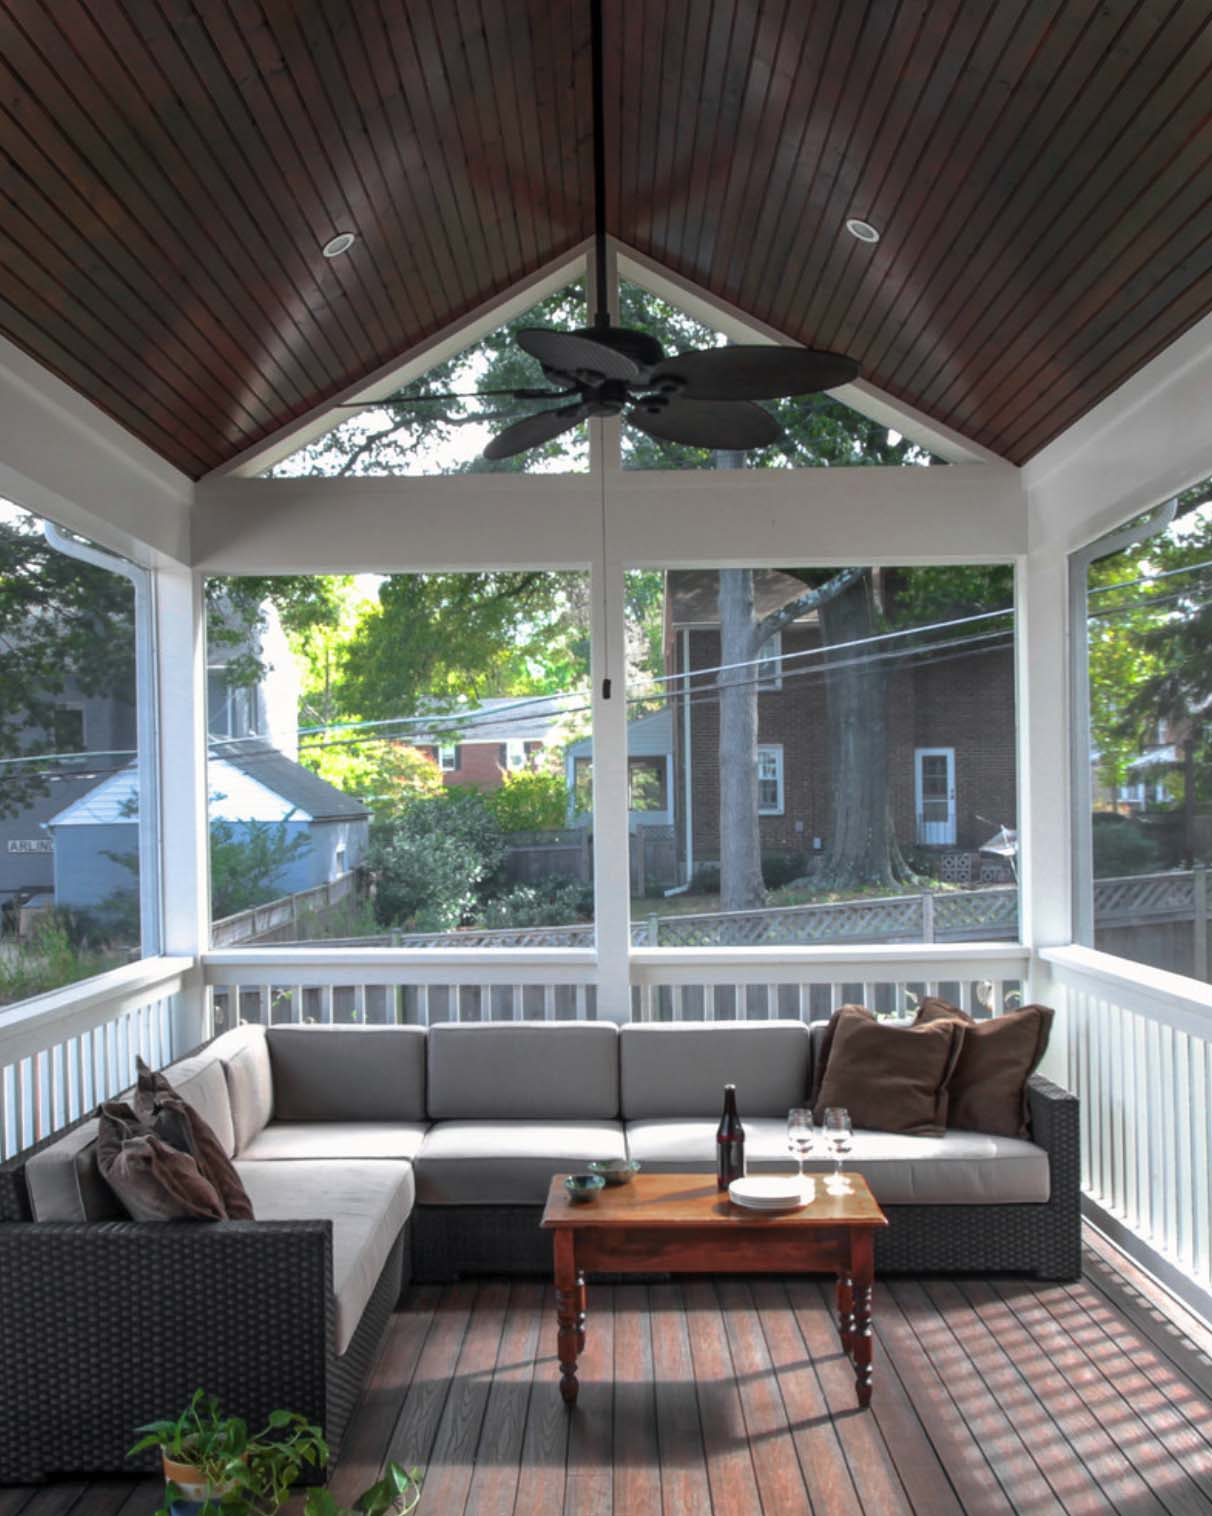 screened in porch ideas screened porch design ideas-24-1 kindesign DKKZYFM